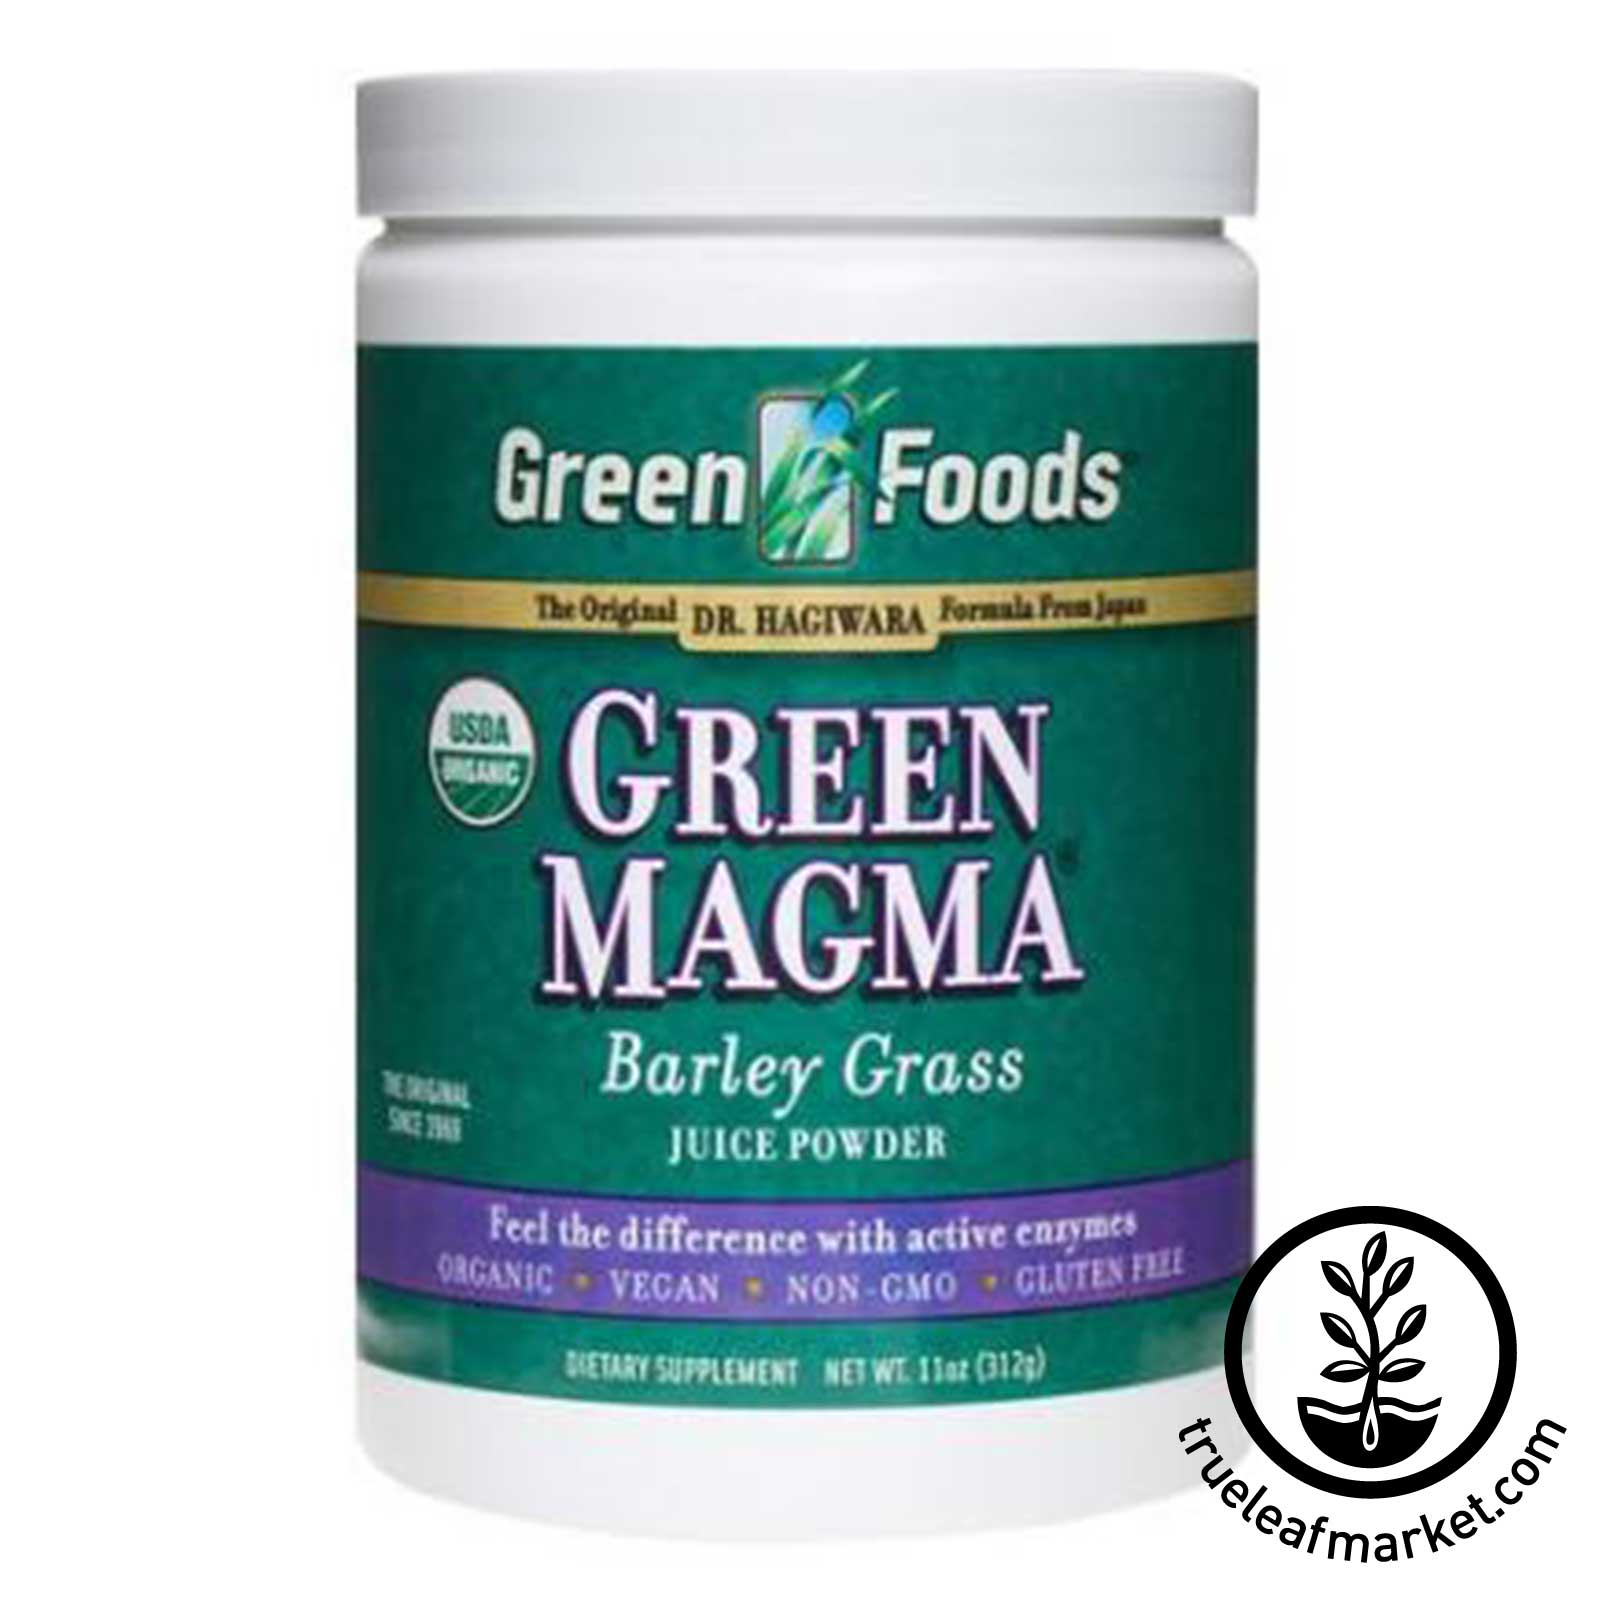 Green Magma Barleygrass Juice Powder powdered barley grass, barley grass pills